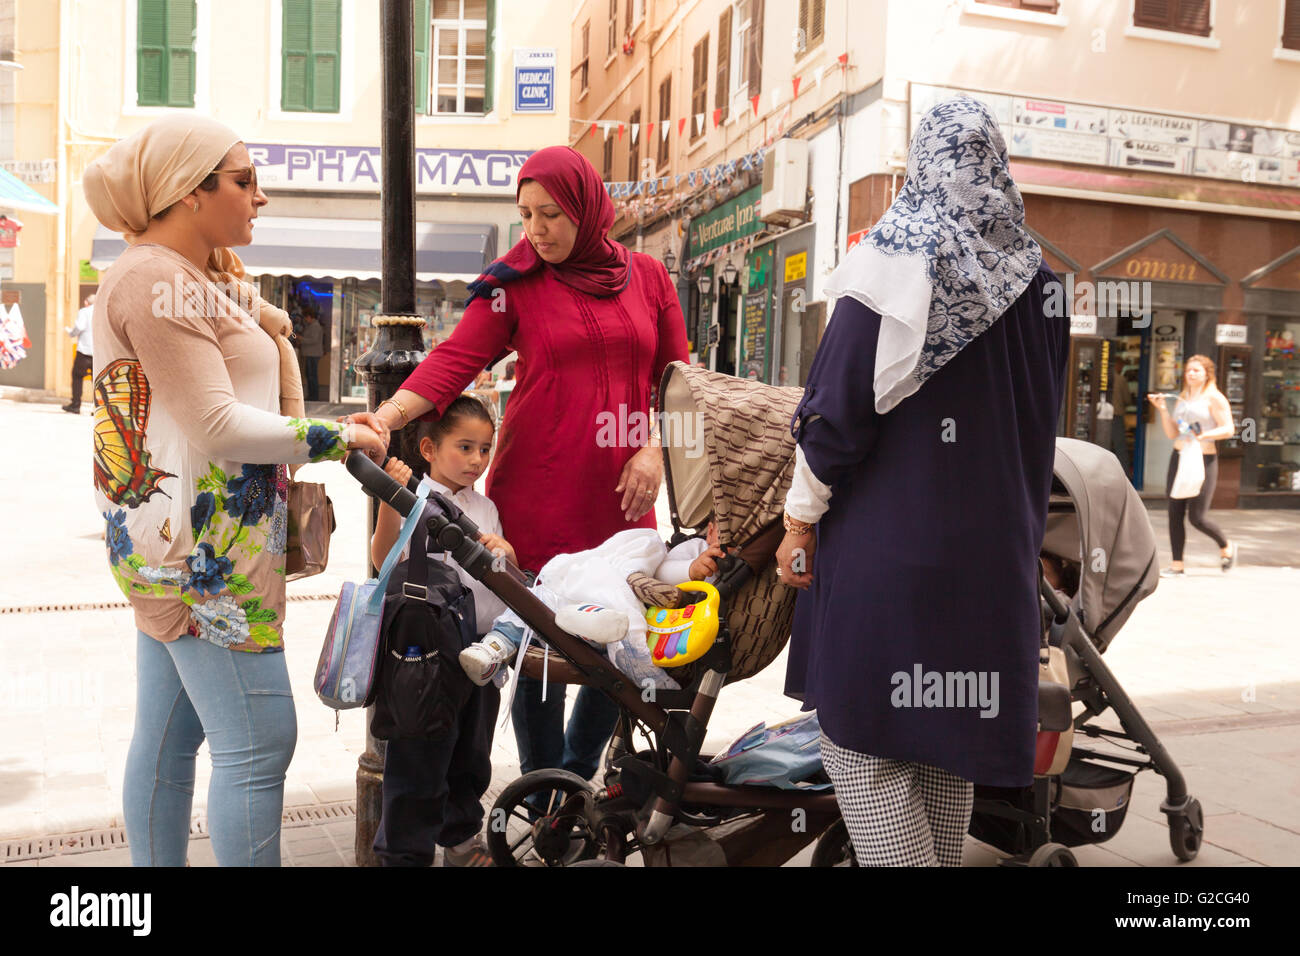 Muslim family in Main Street, Gibraltar, Europe. Concept of European Immigration Stock Photo